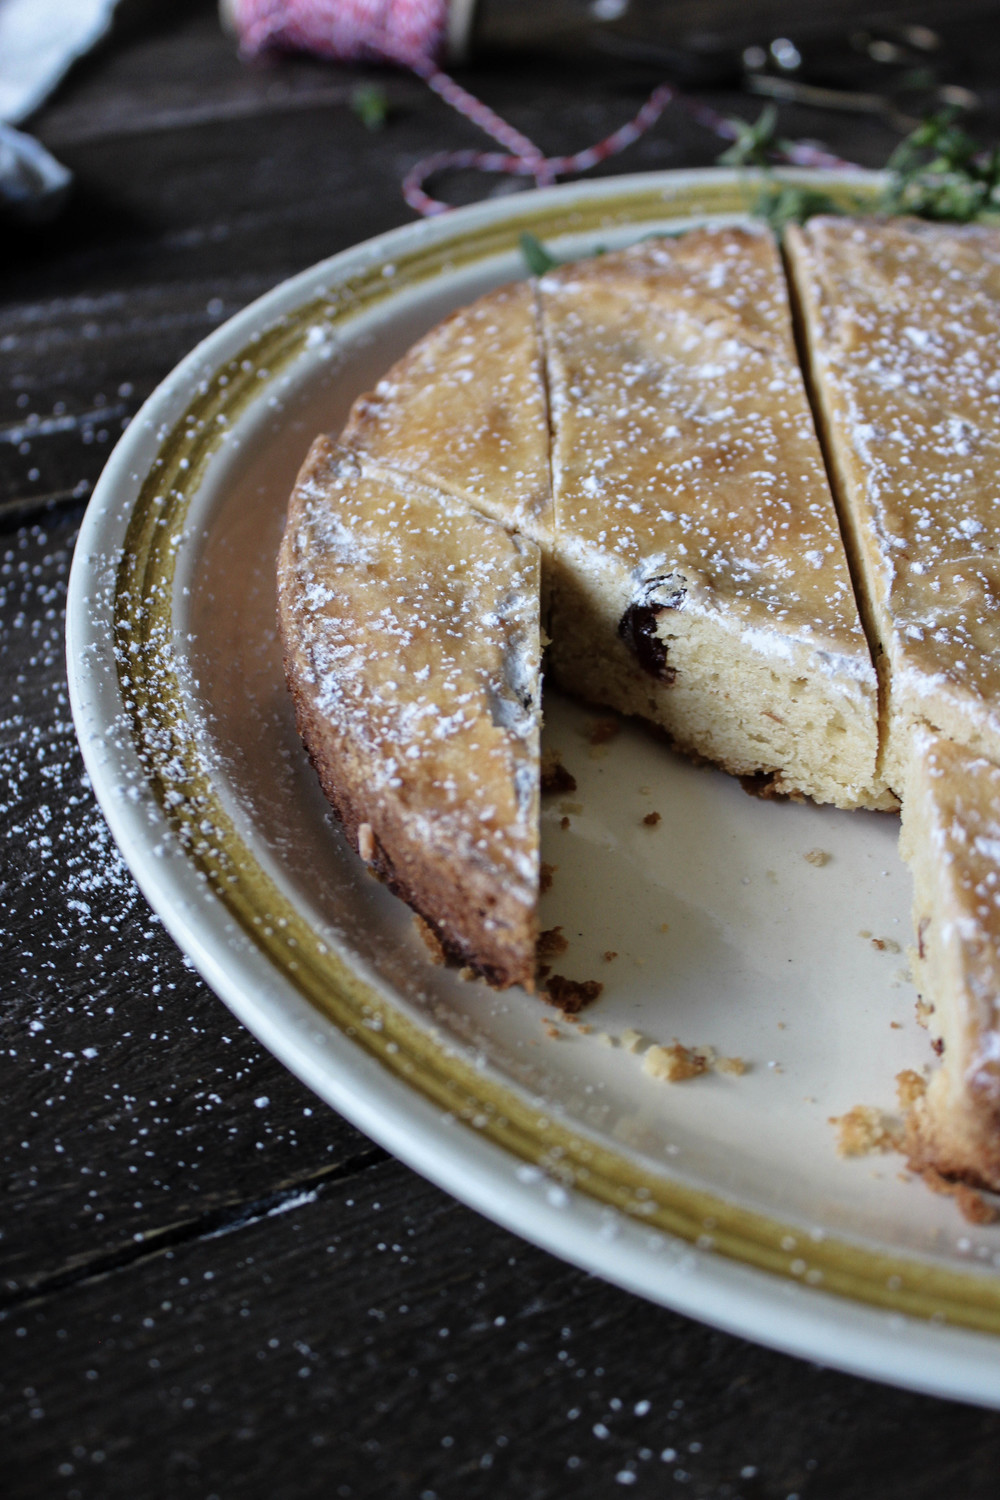 Cultured Butter Gateau Breton with Rum-Soaked Cherries